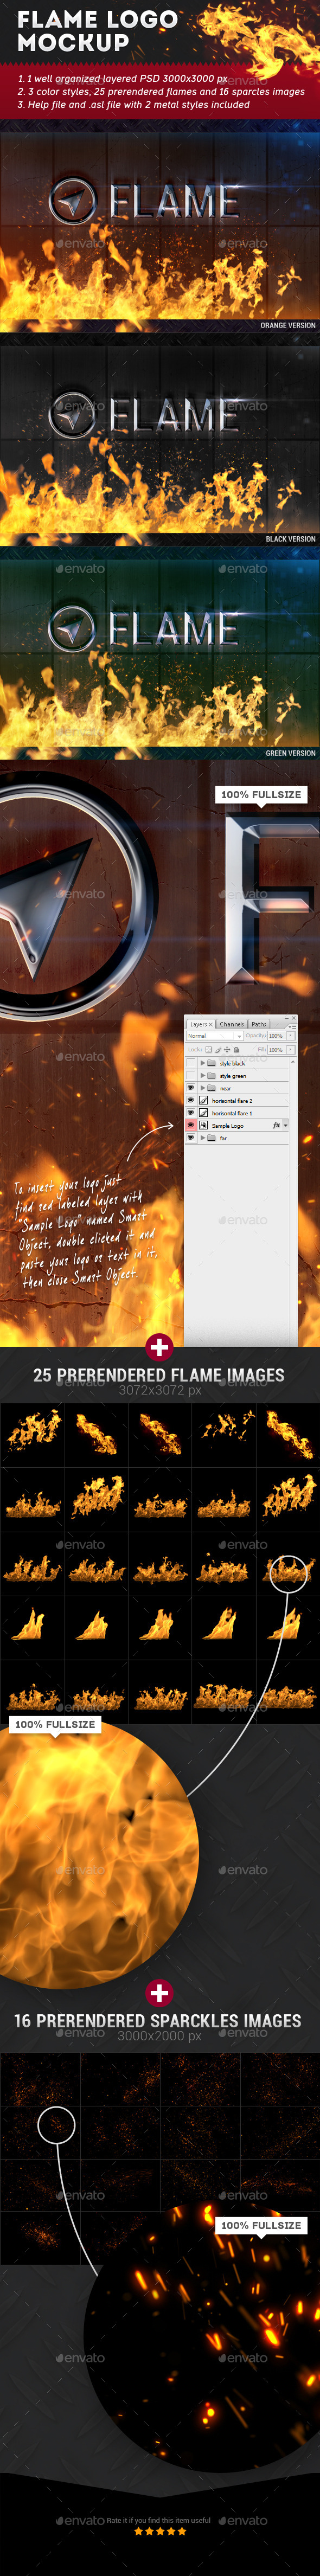 GraphicRiver Flame Logo Mockup 11566200